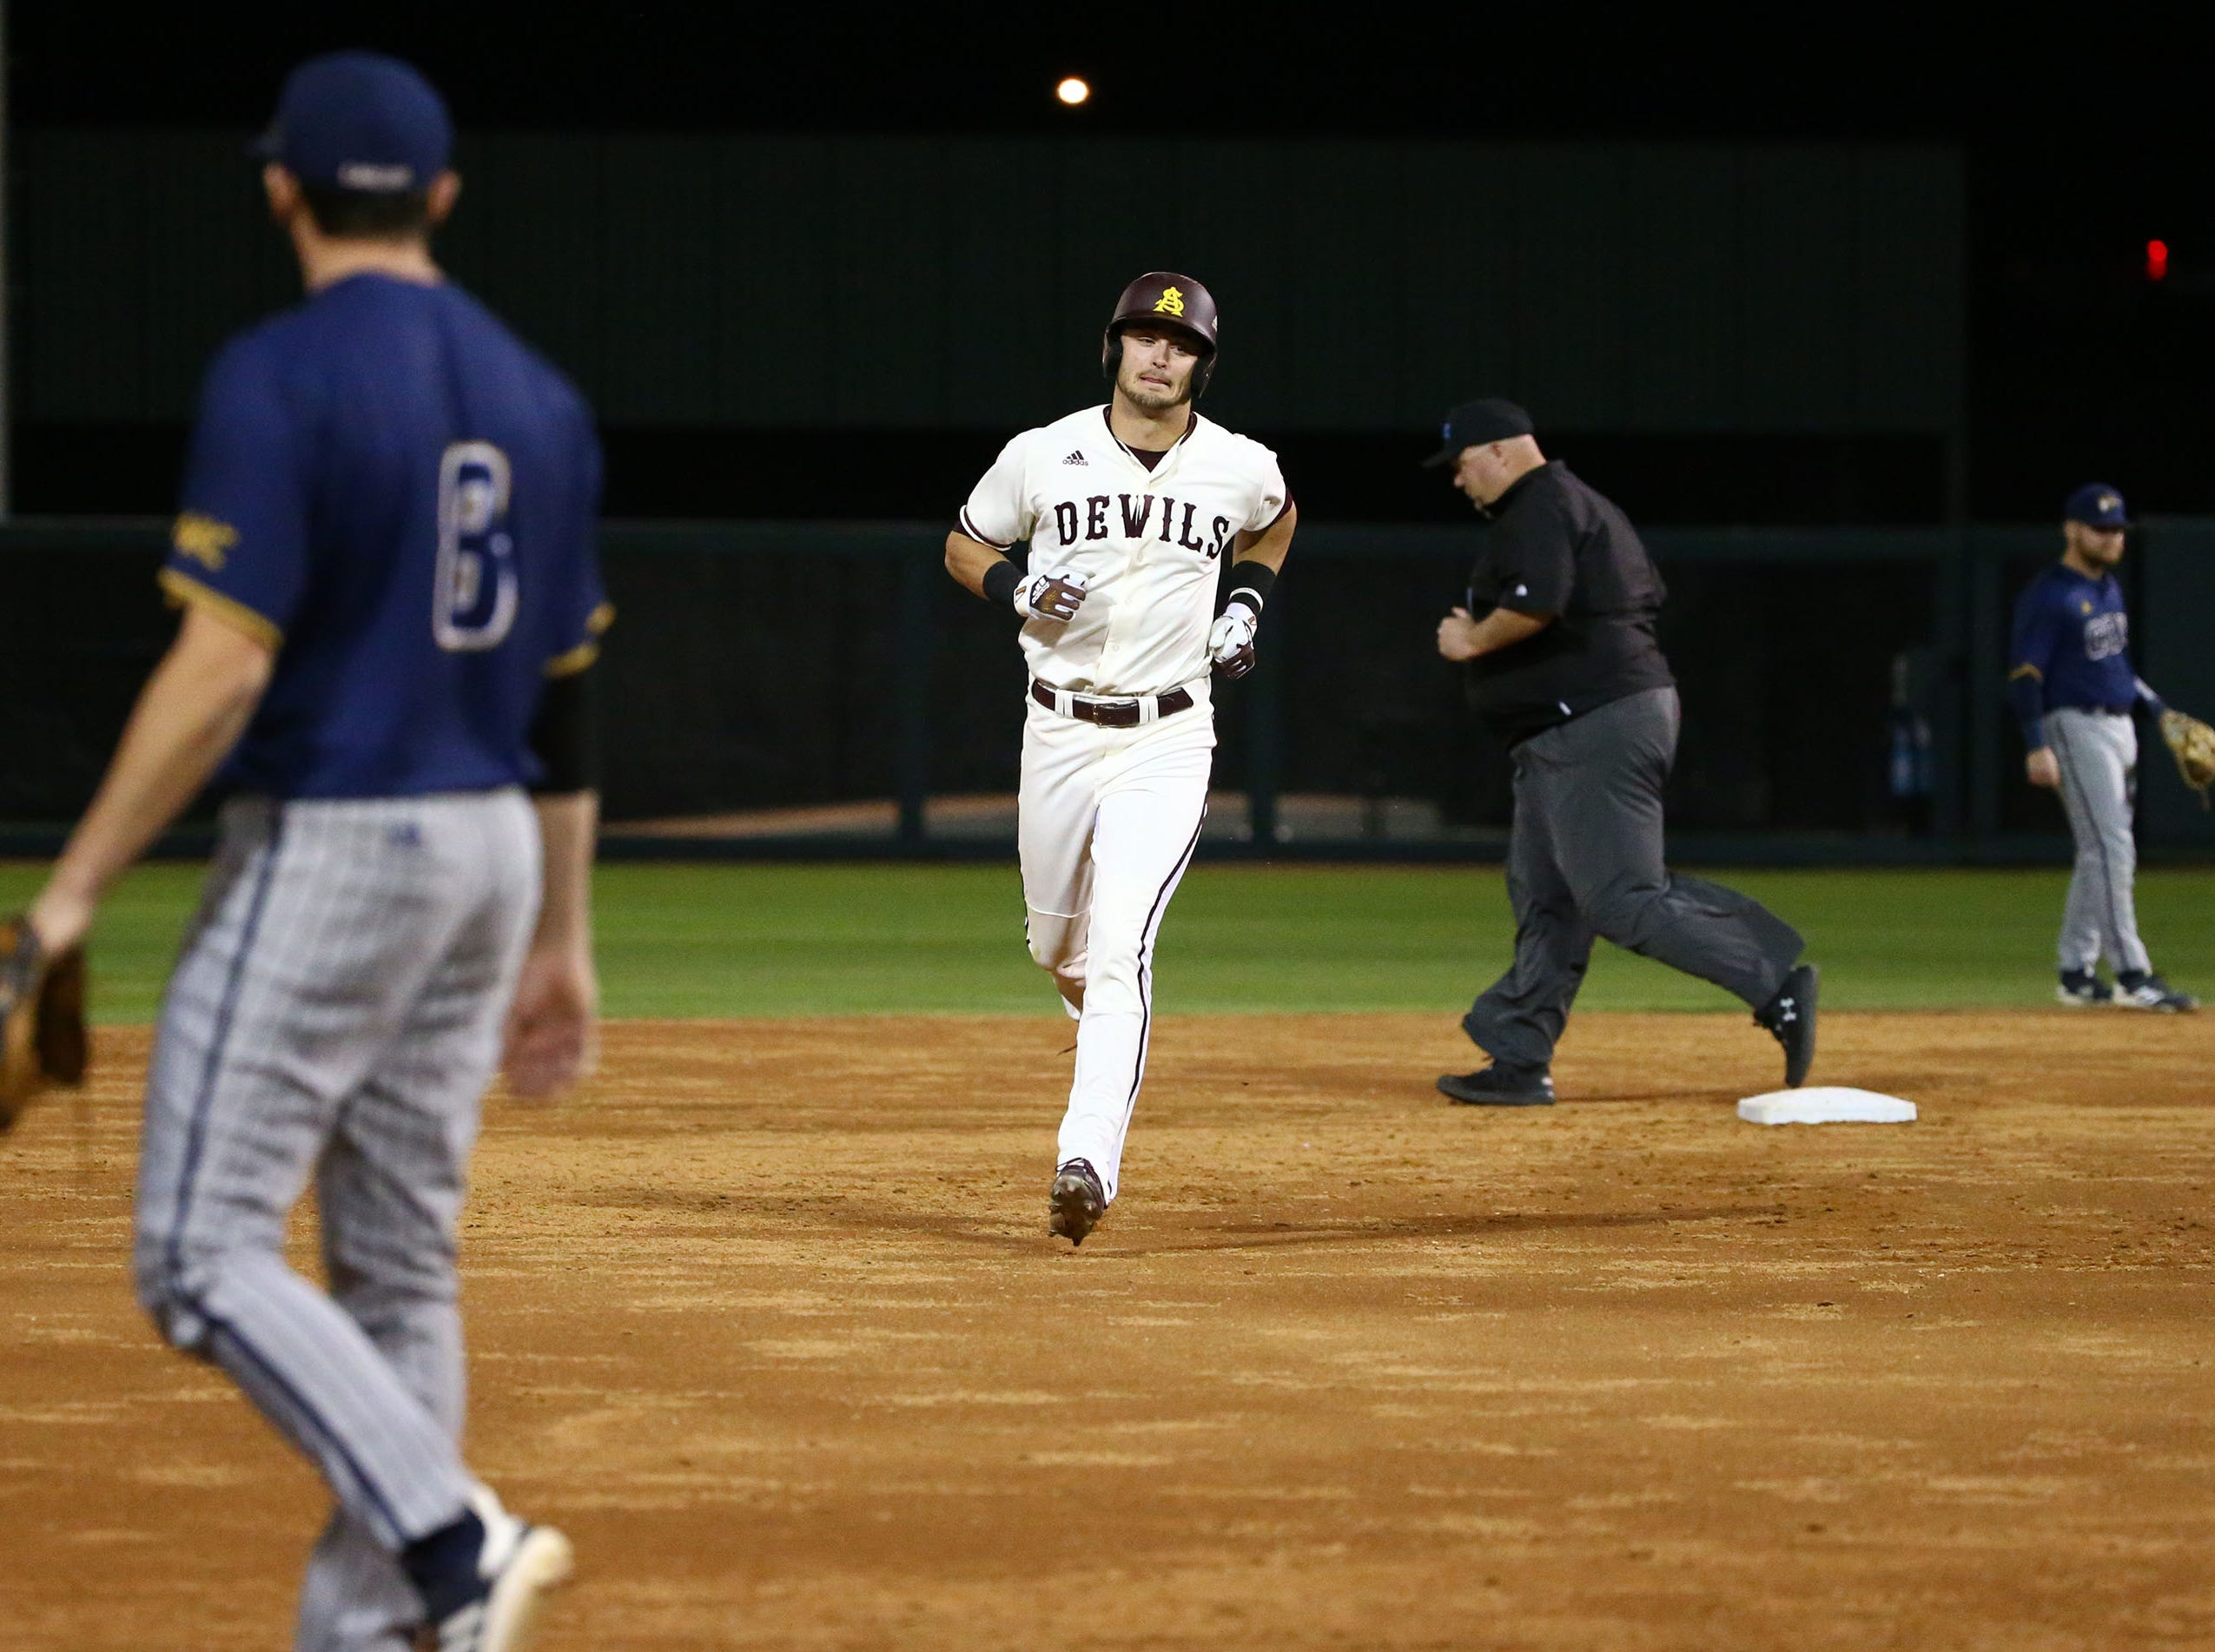 Arizona State Sun Devils Hunter Bishop (4) hits a 2-run home run against the California Baptist Lancers in the third inning at Phoenix Municipal Stadium on Mar. 20, 2019 in Phoenix, Ariz.